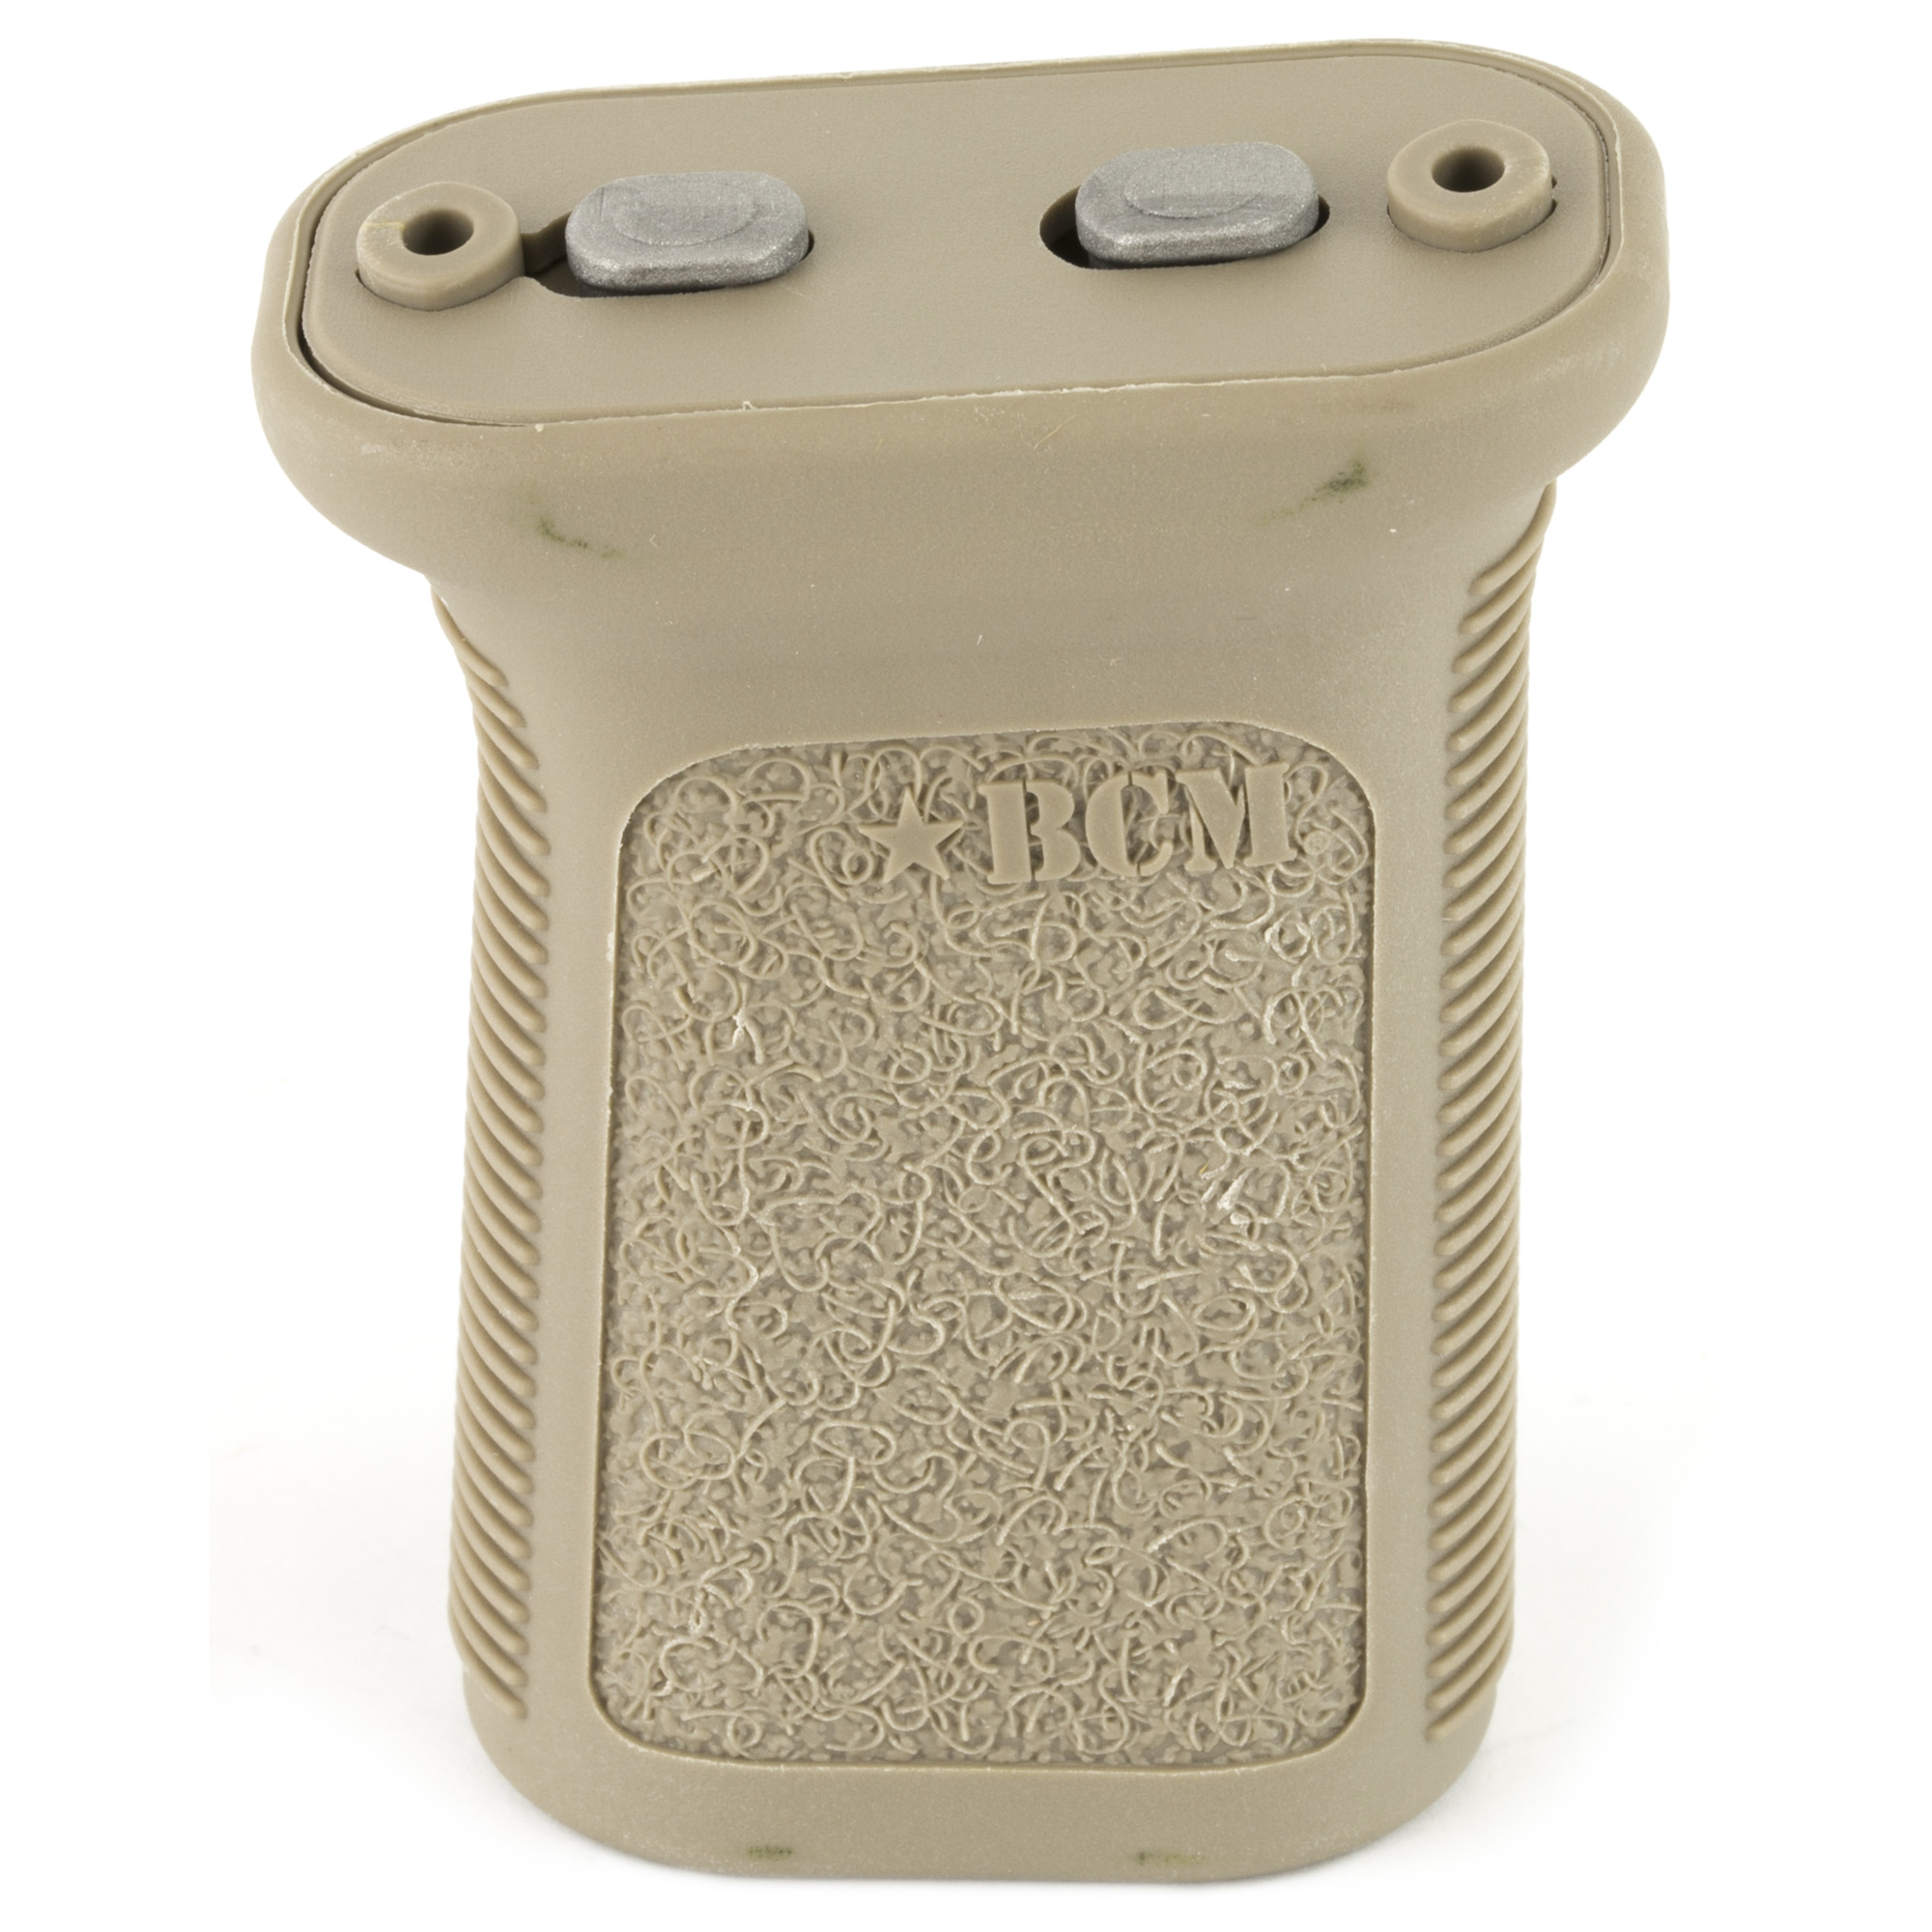 """Bravo Company's BCMGUNFIGHTER Vertical Grip Key-Mod-Mod-3 version has a low-profile length for increased mobility and decreased snag factor. The forward angle increases the rigidity of the forearm"""" while providing a more natural wrist angle. It can be mounted in reverse angle to increase control when grabbing handguard and grip and its flat sides with aggressive texture give better yaw control to the shooter during firing and non-firing manipulations."""